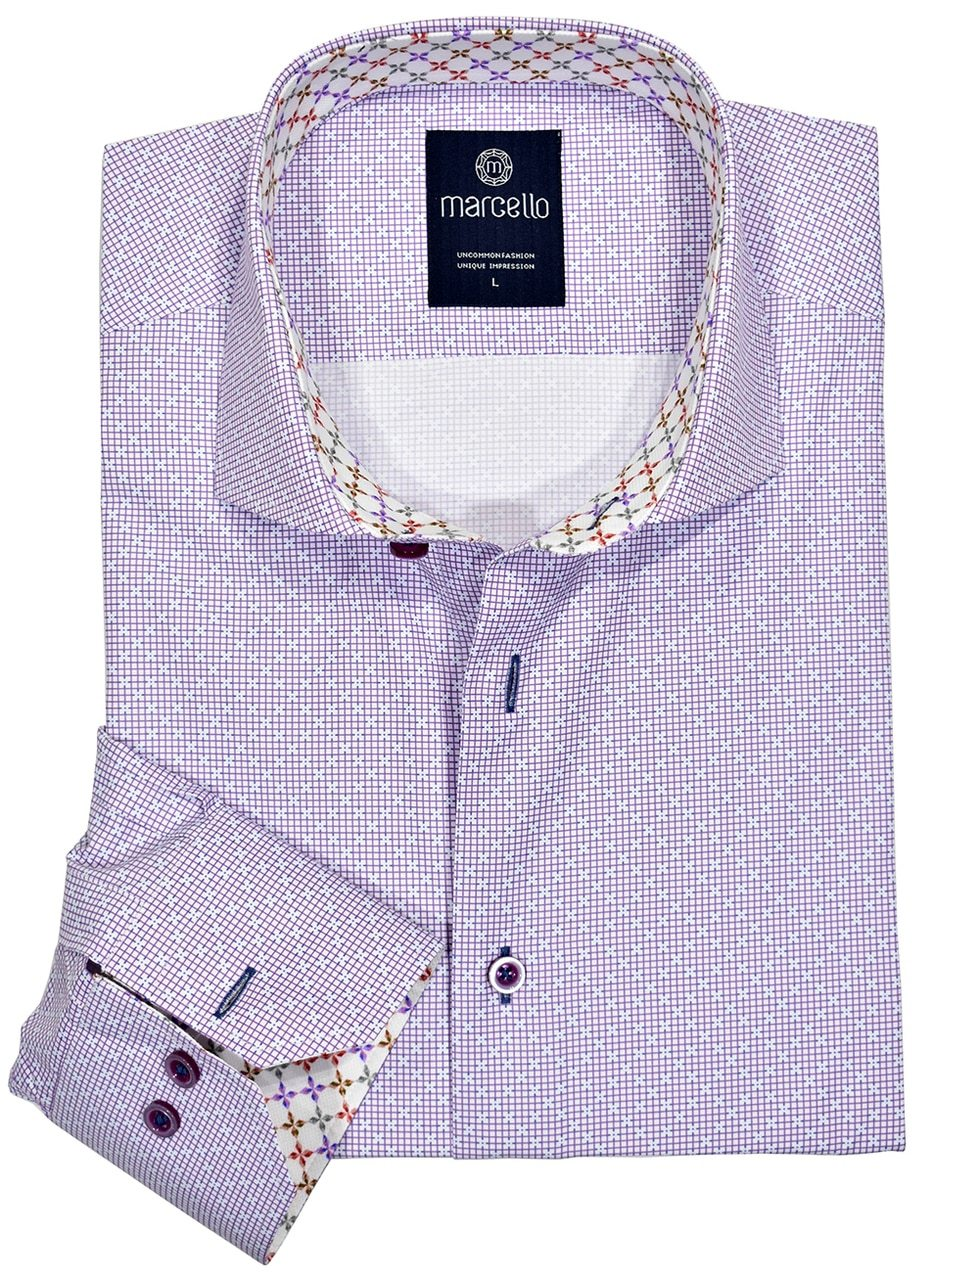 W1081 Lilac Neat Shirt - Marcello Sport